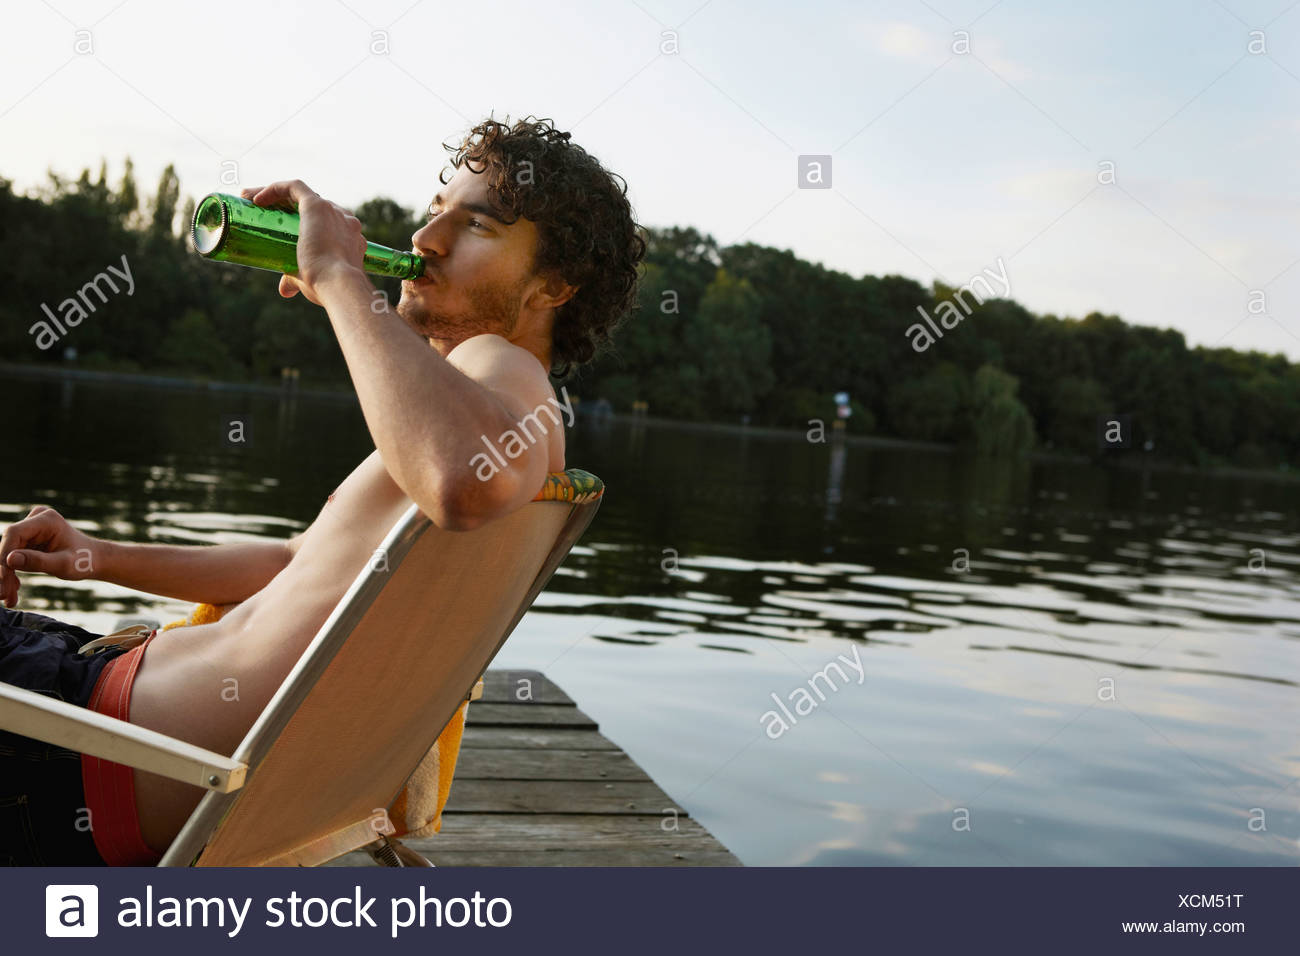 Germany, Berlin, Young man drinking bottled beverage, side view, portrait - Stock Image